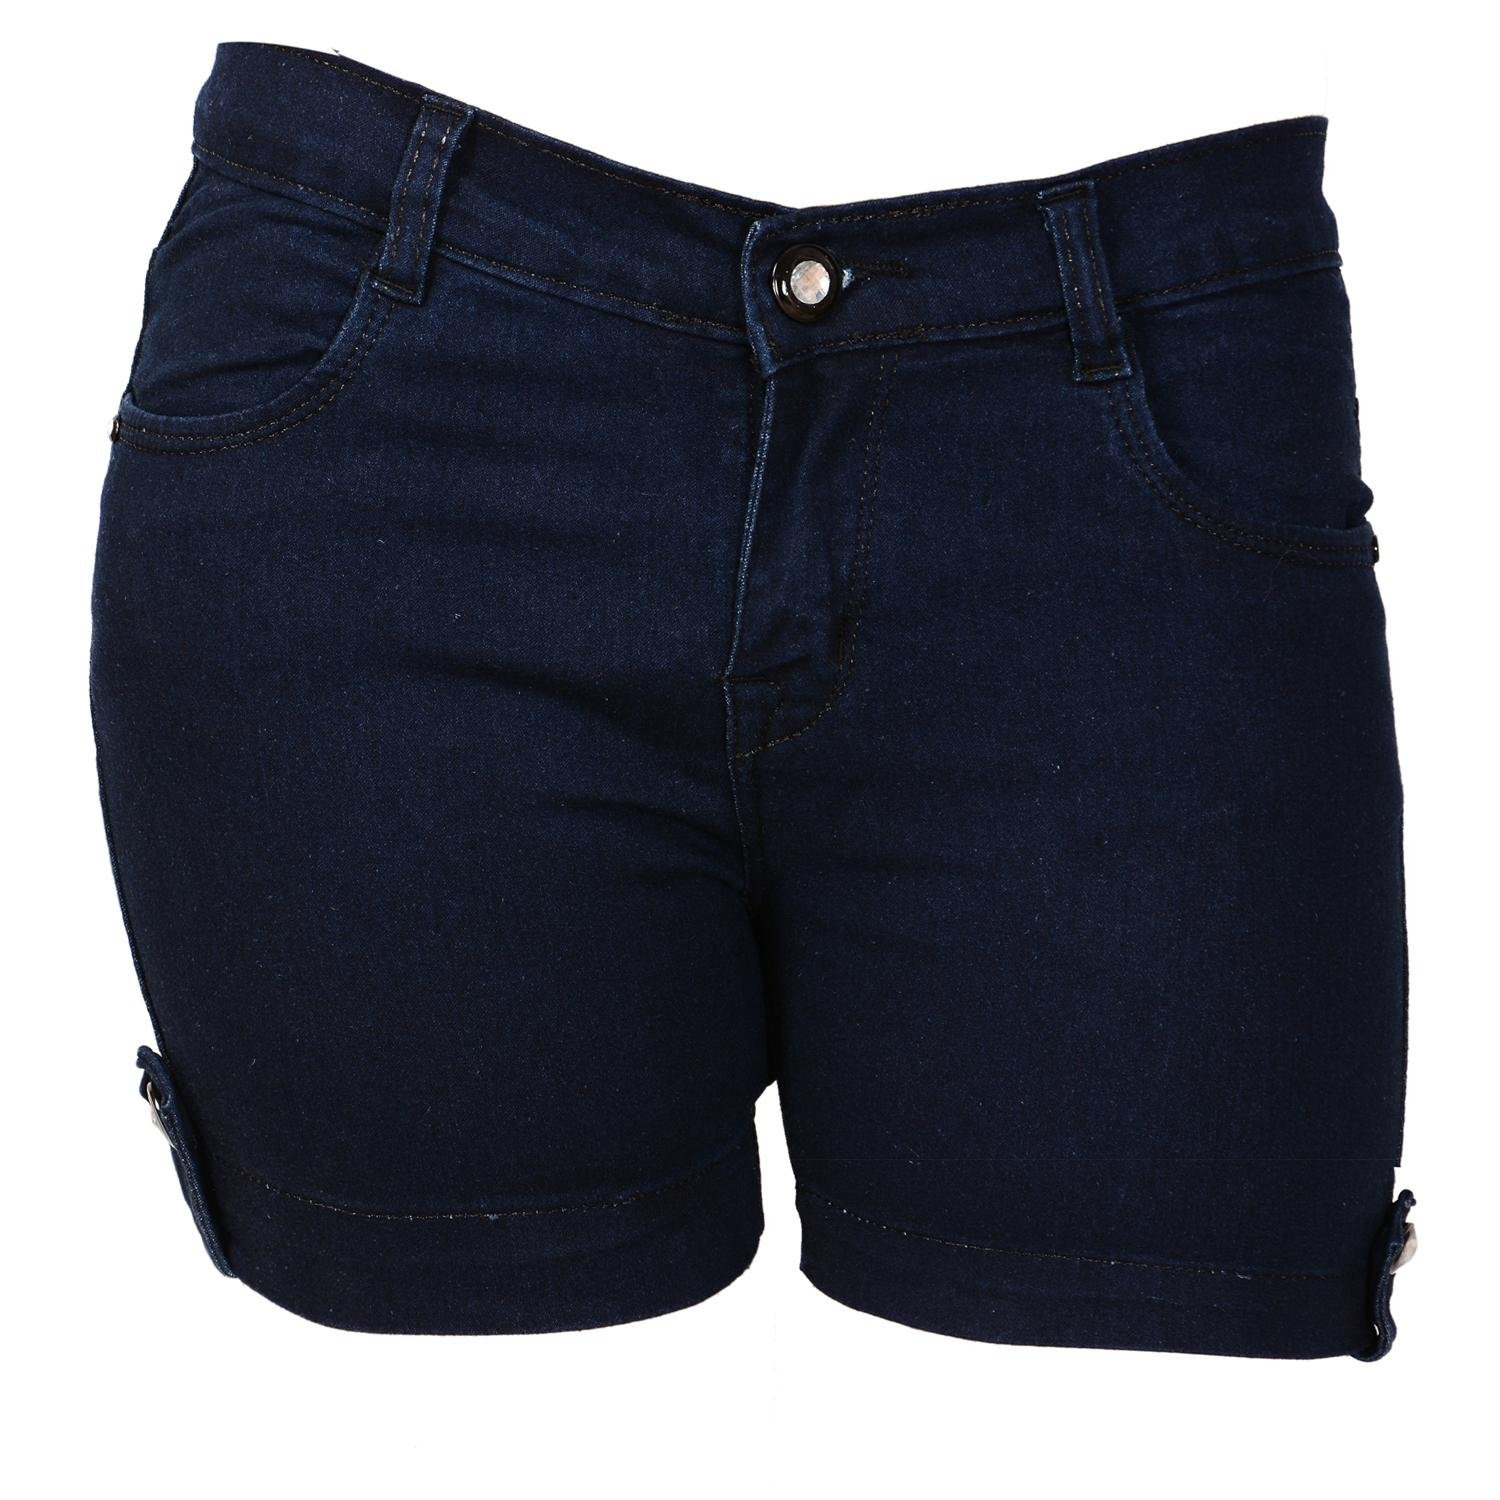 Deals on Ganga Basic Denim Shorts for Women